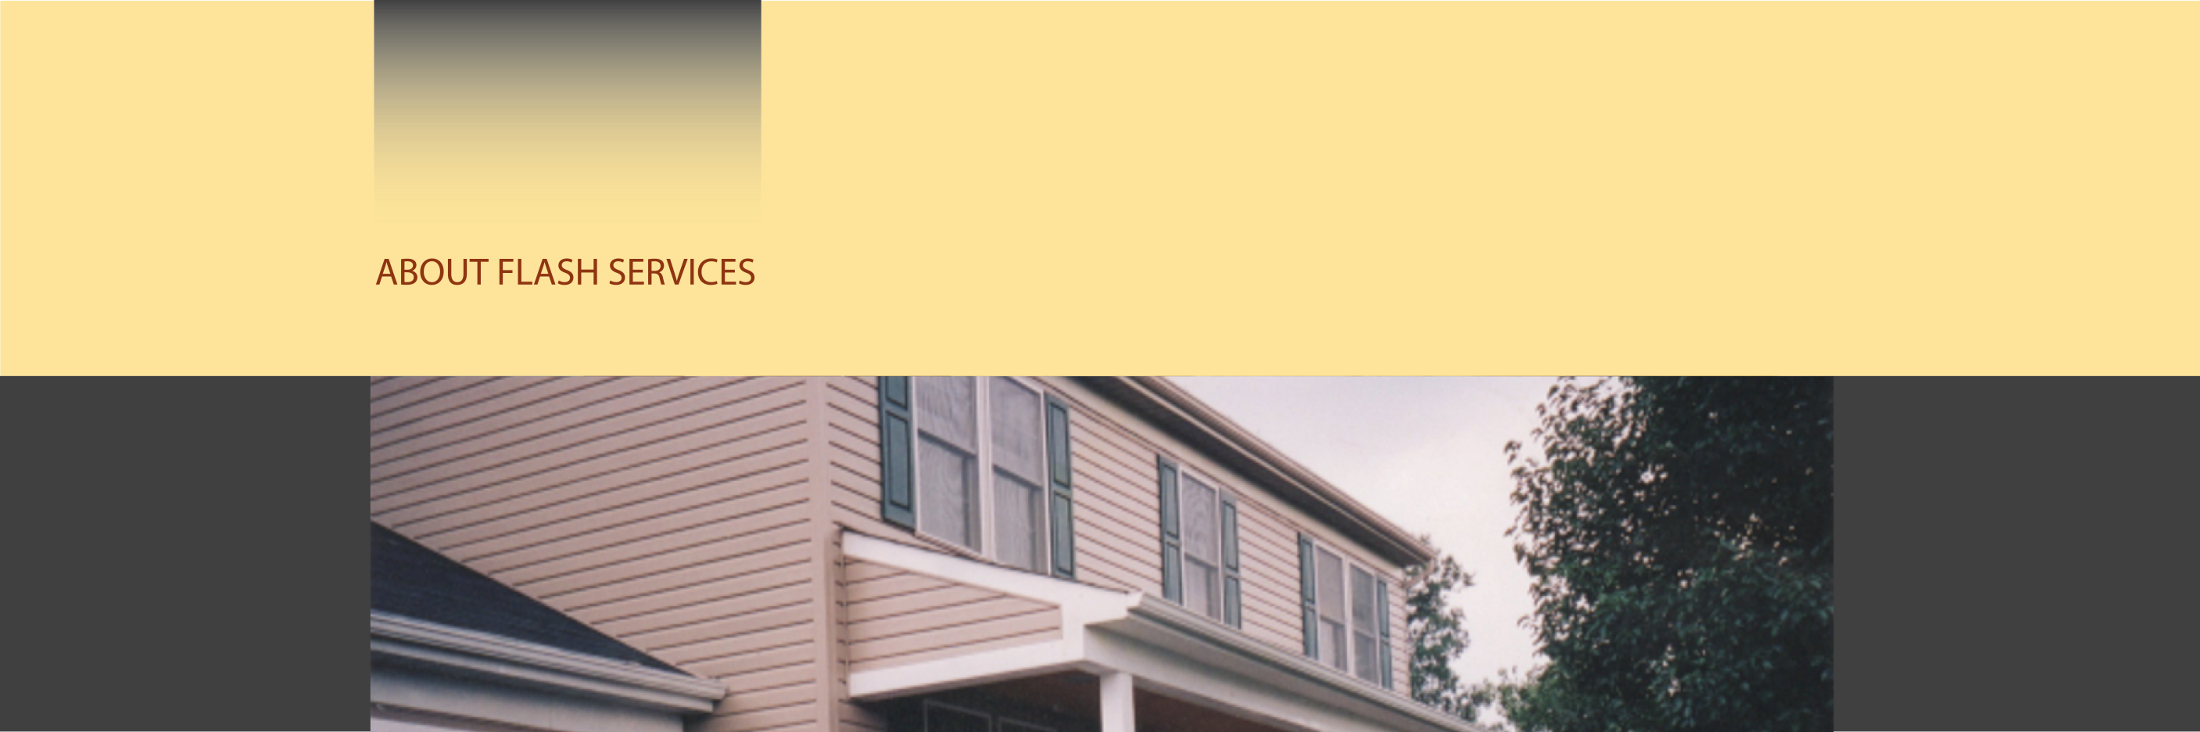 About Flash Services, Remodeling & Repair in Northern Virginia